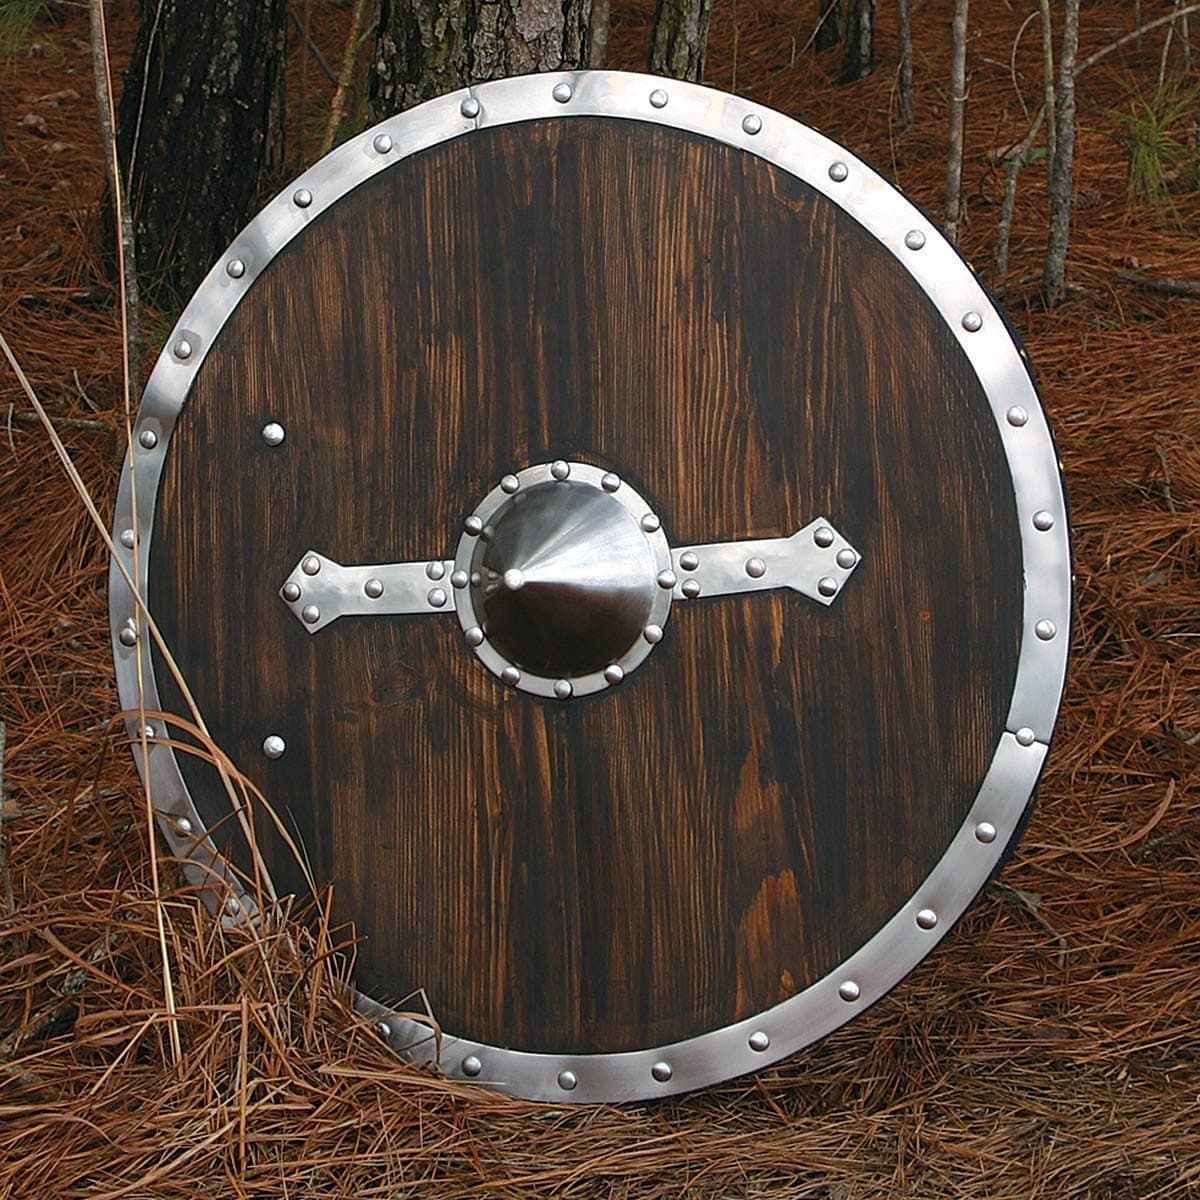 Brown Wooden Round Viking Shield with Steel Boss, Steel Decorative Strips and Steel Rim